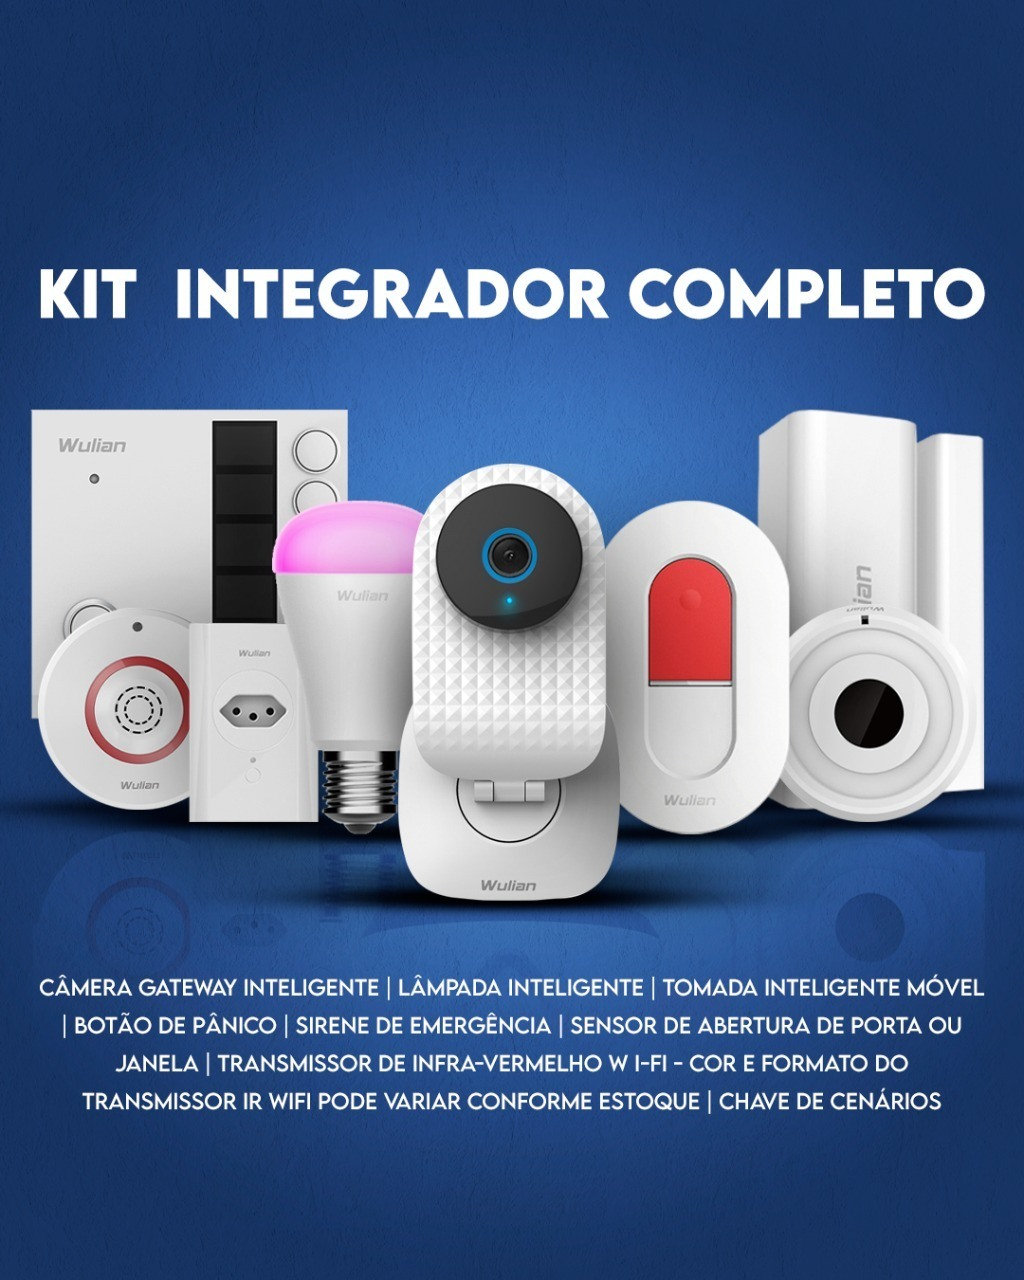 Kit Integrador Completo